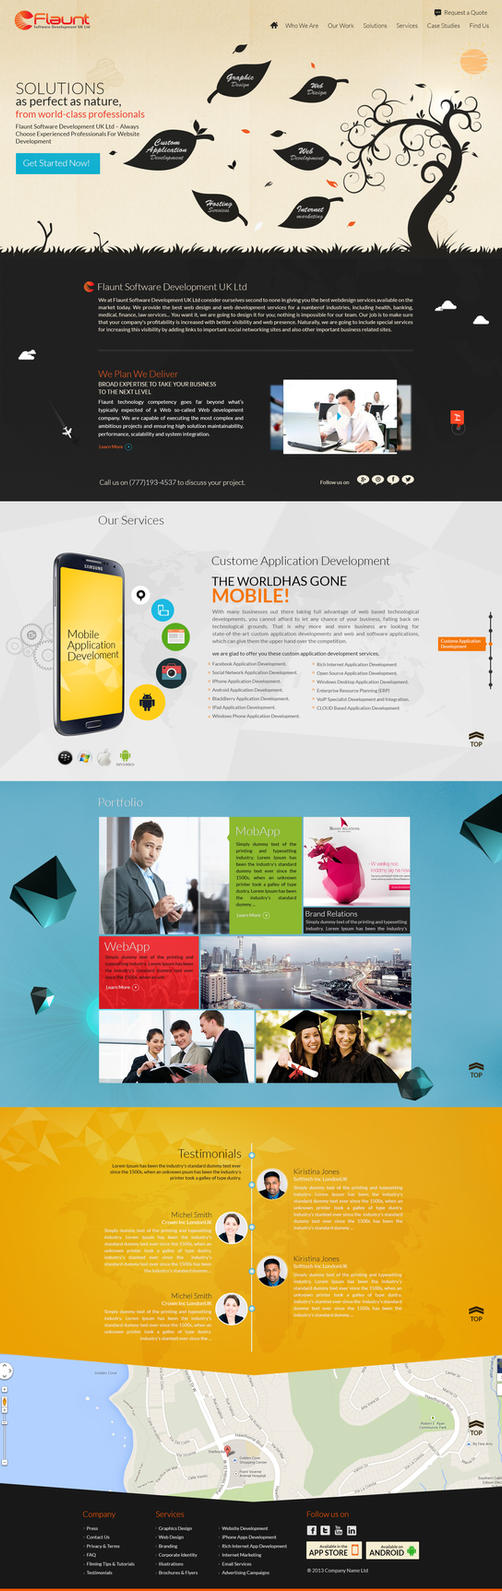 Web Design by preet618